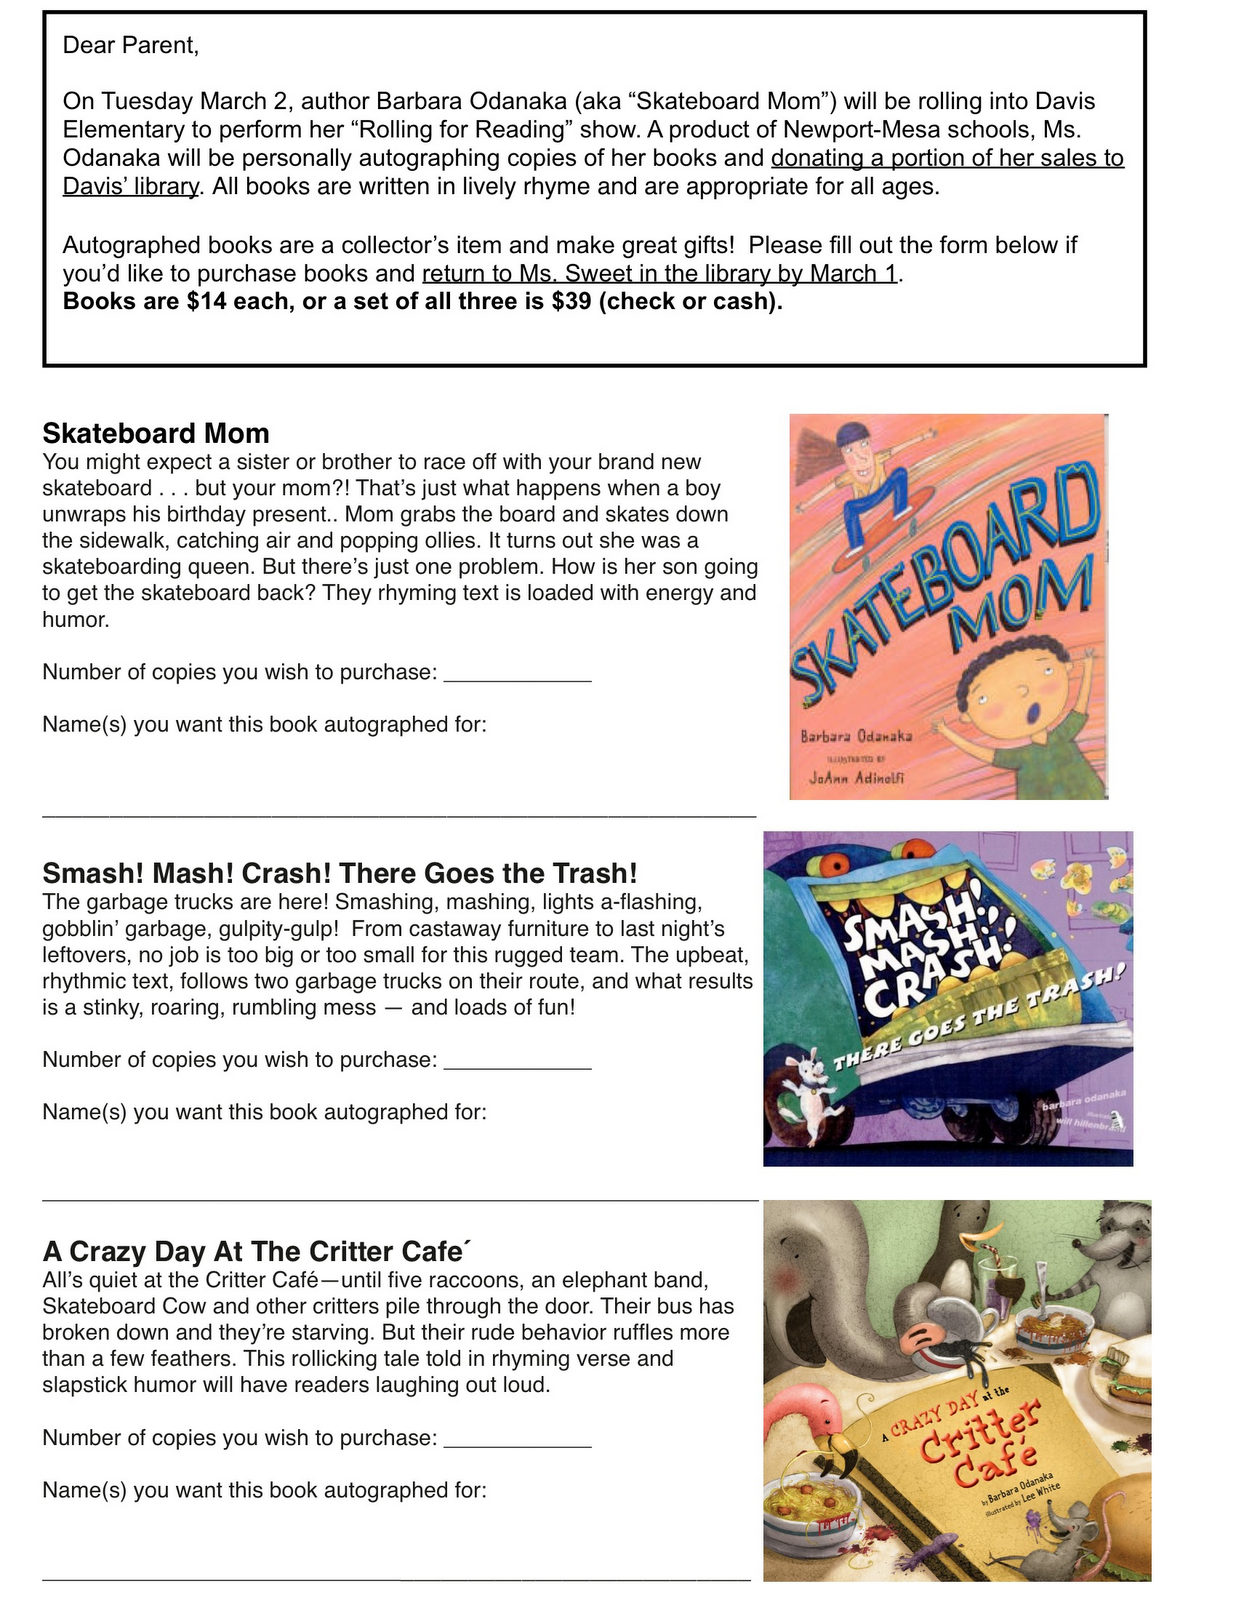 Author Visits by Barb Odanaka!: Sample Book Order Form